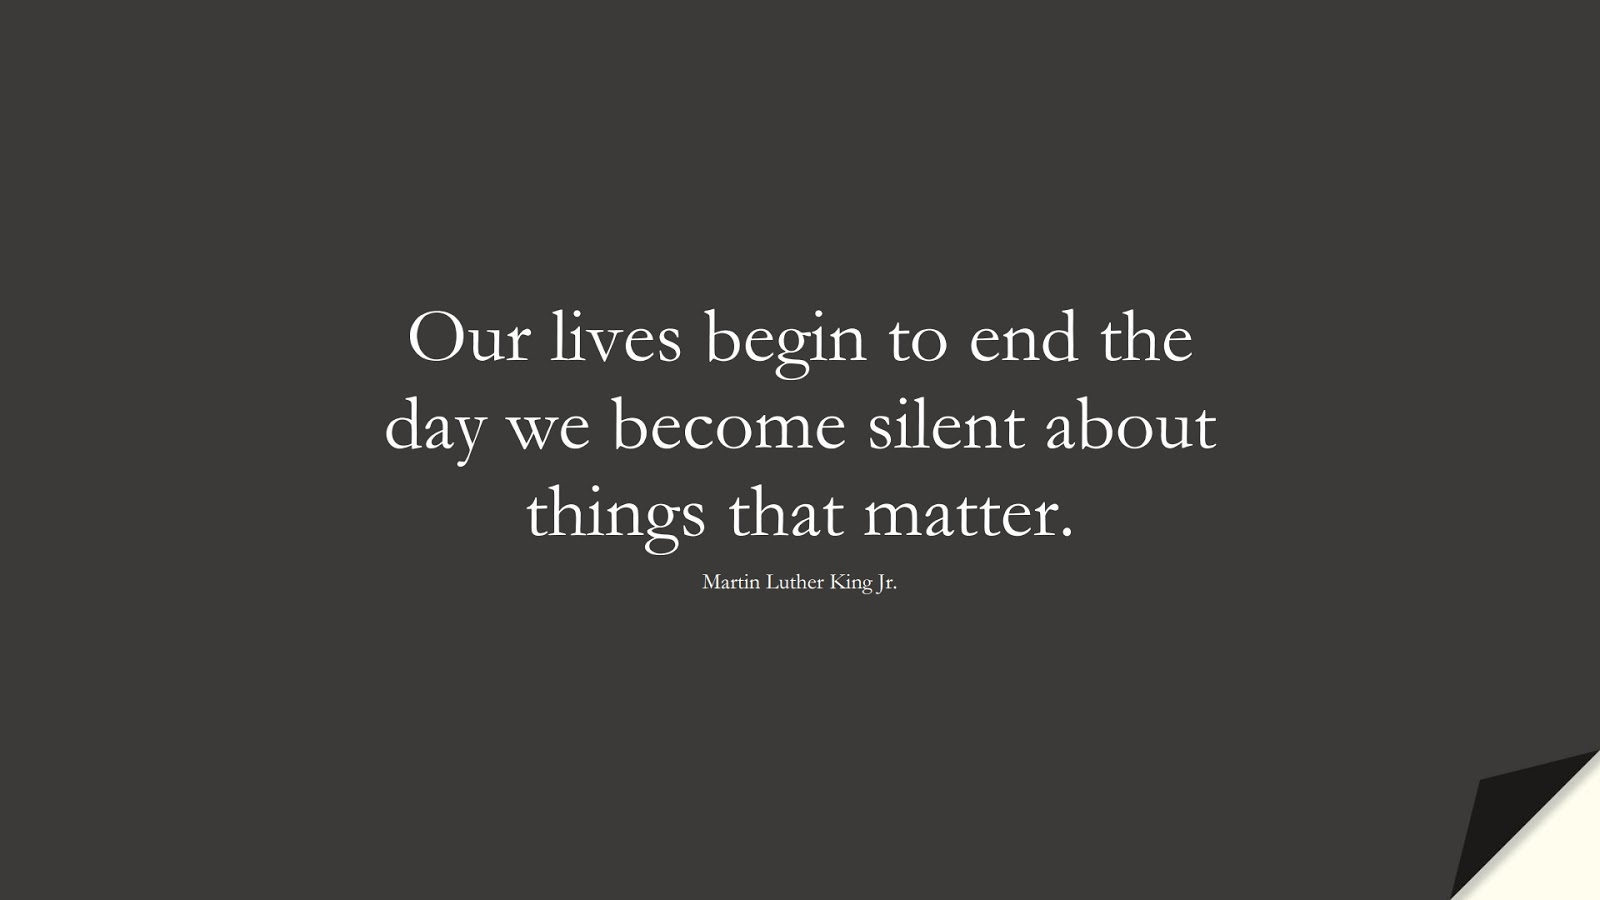 Our lives begin to end the day we become silent about things that matter. (Martin Luther King Jr.);  #MartinLutherKingJrQuotes